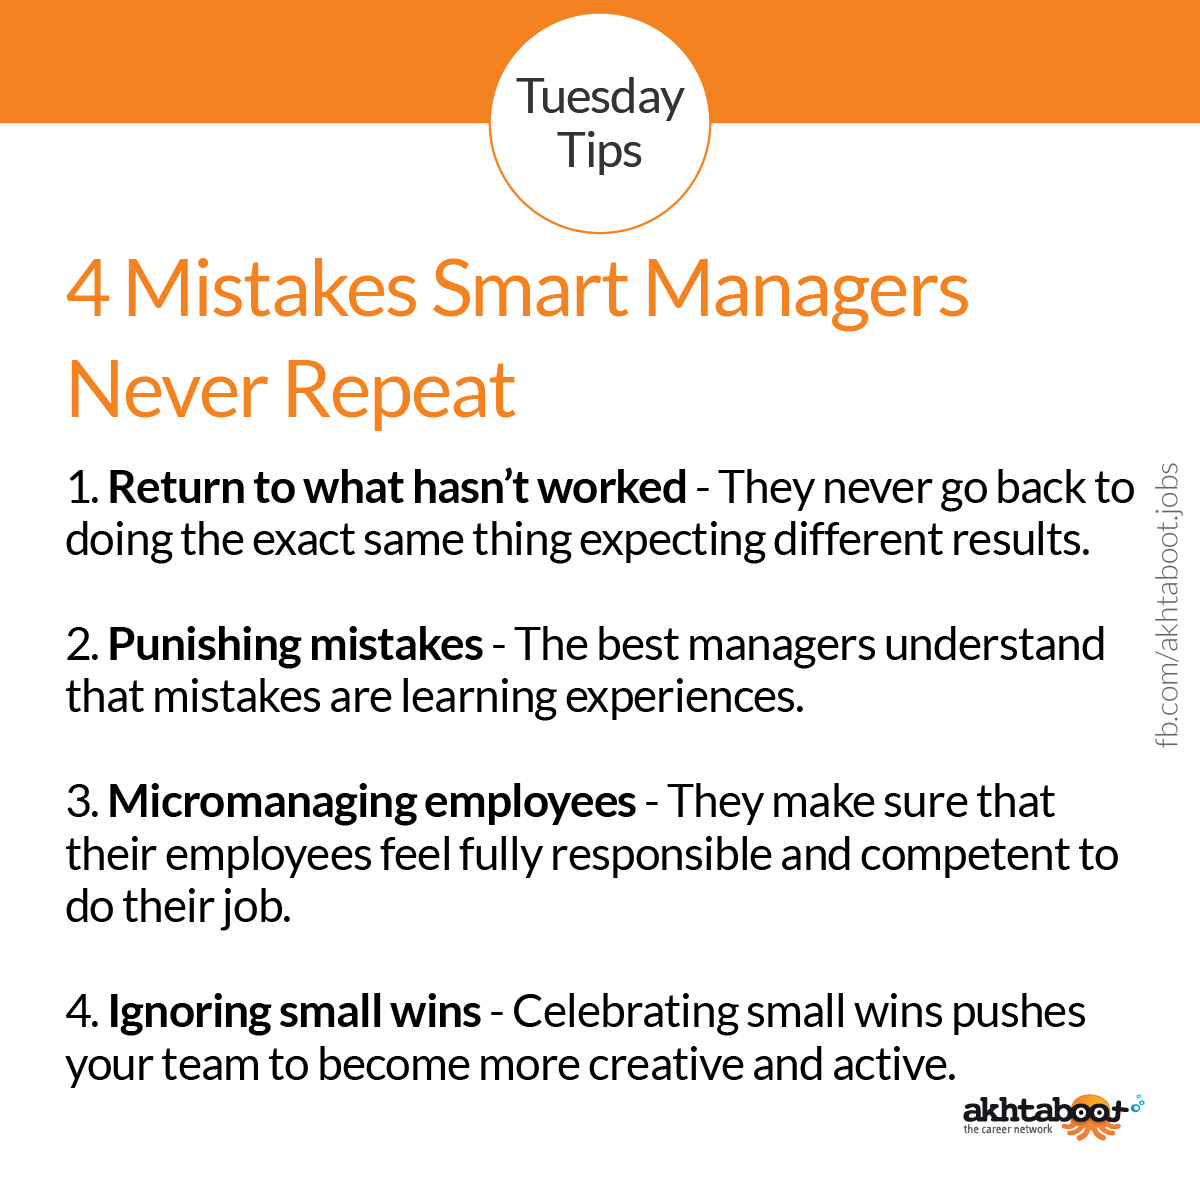 4 Mistakes Smart Managers Never Repeat